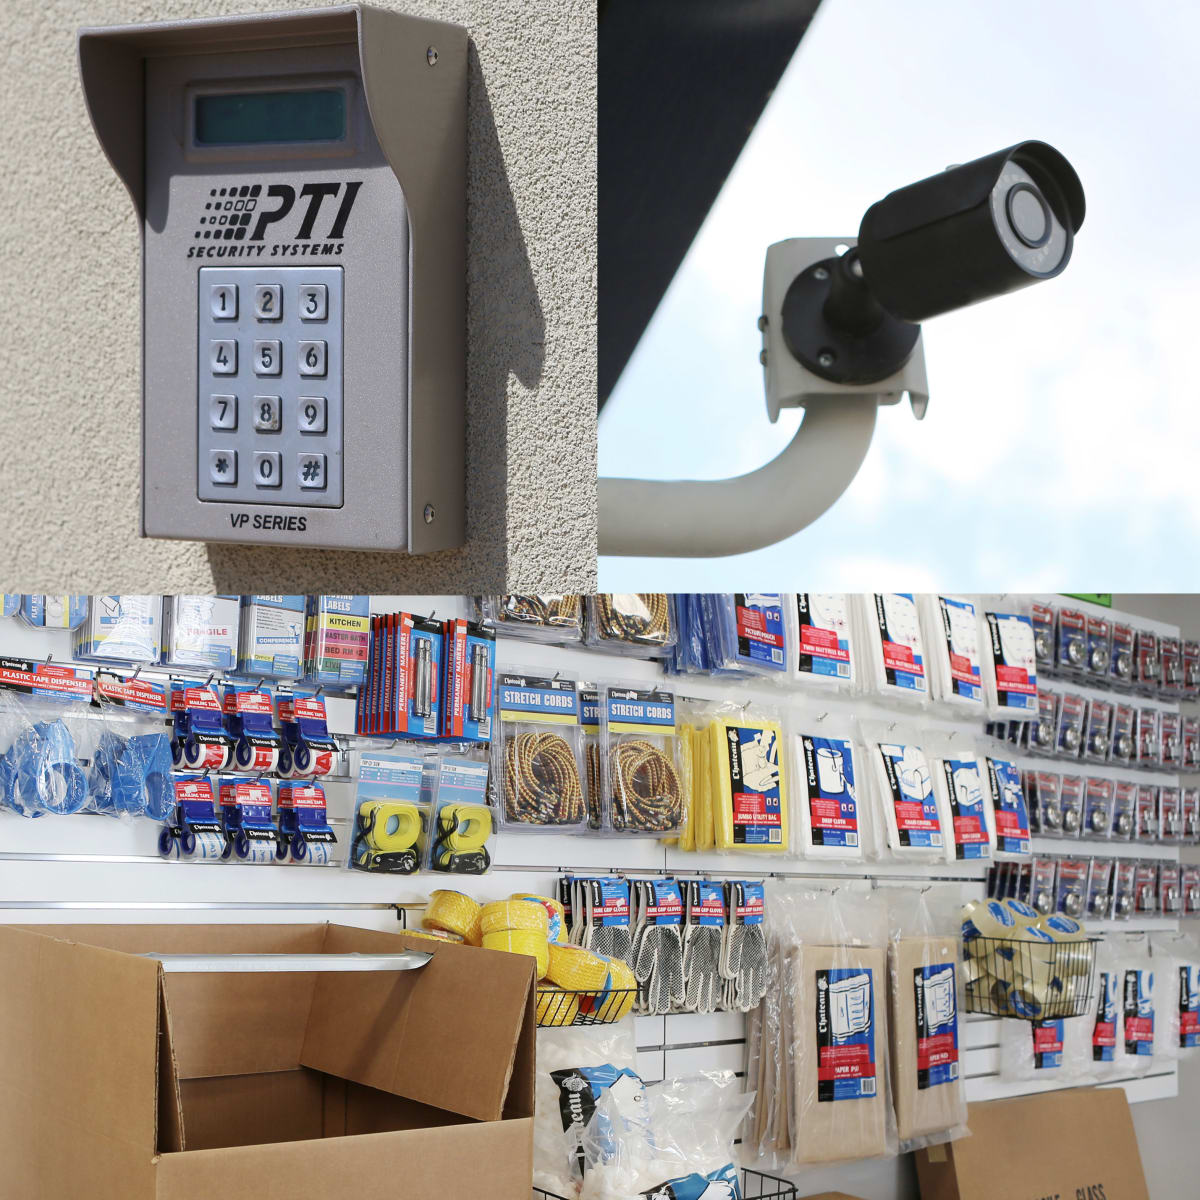 We provide 24 hour security monitoring and sell various moving and packing supplies at Jupiter Park Self Storage in Jupiter, Florida